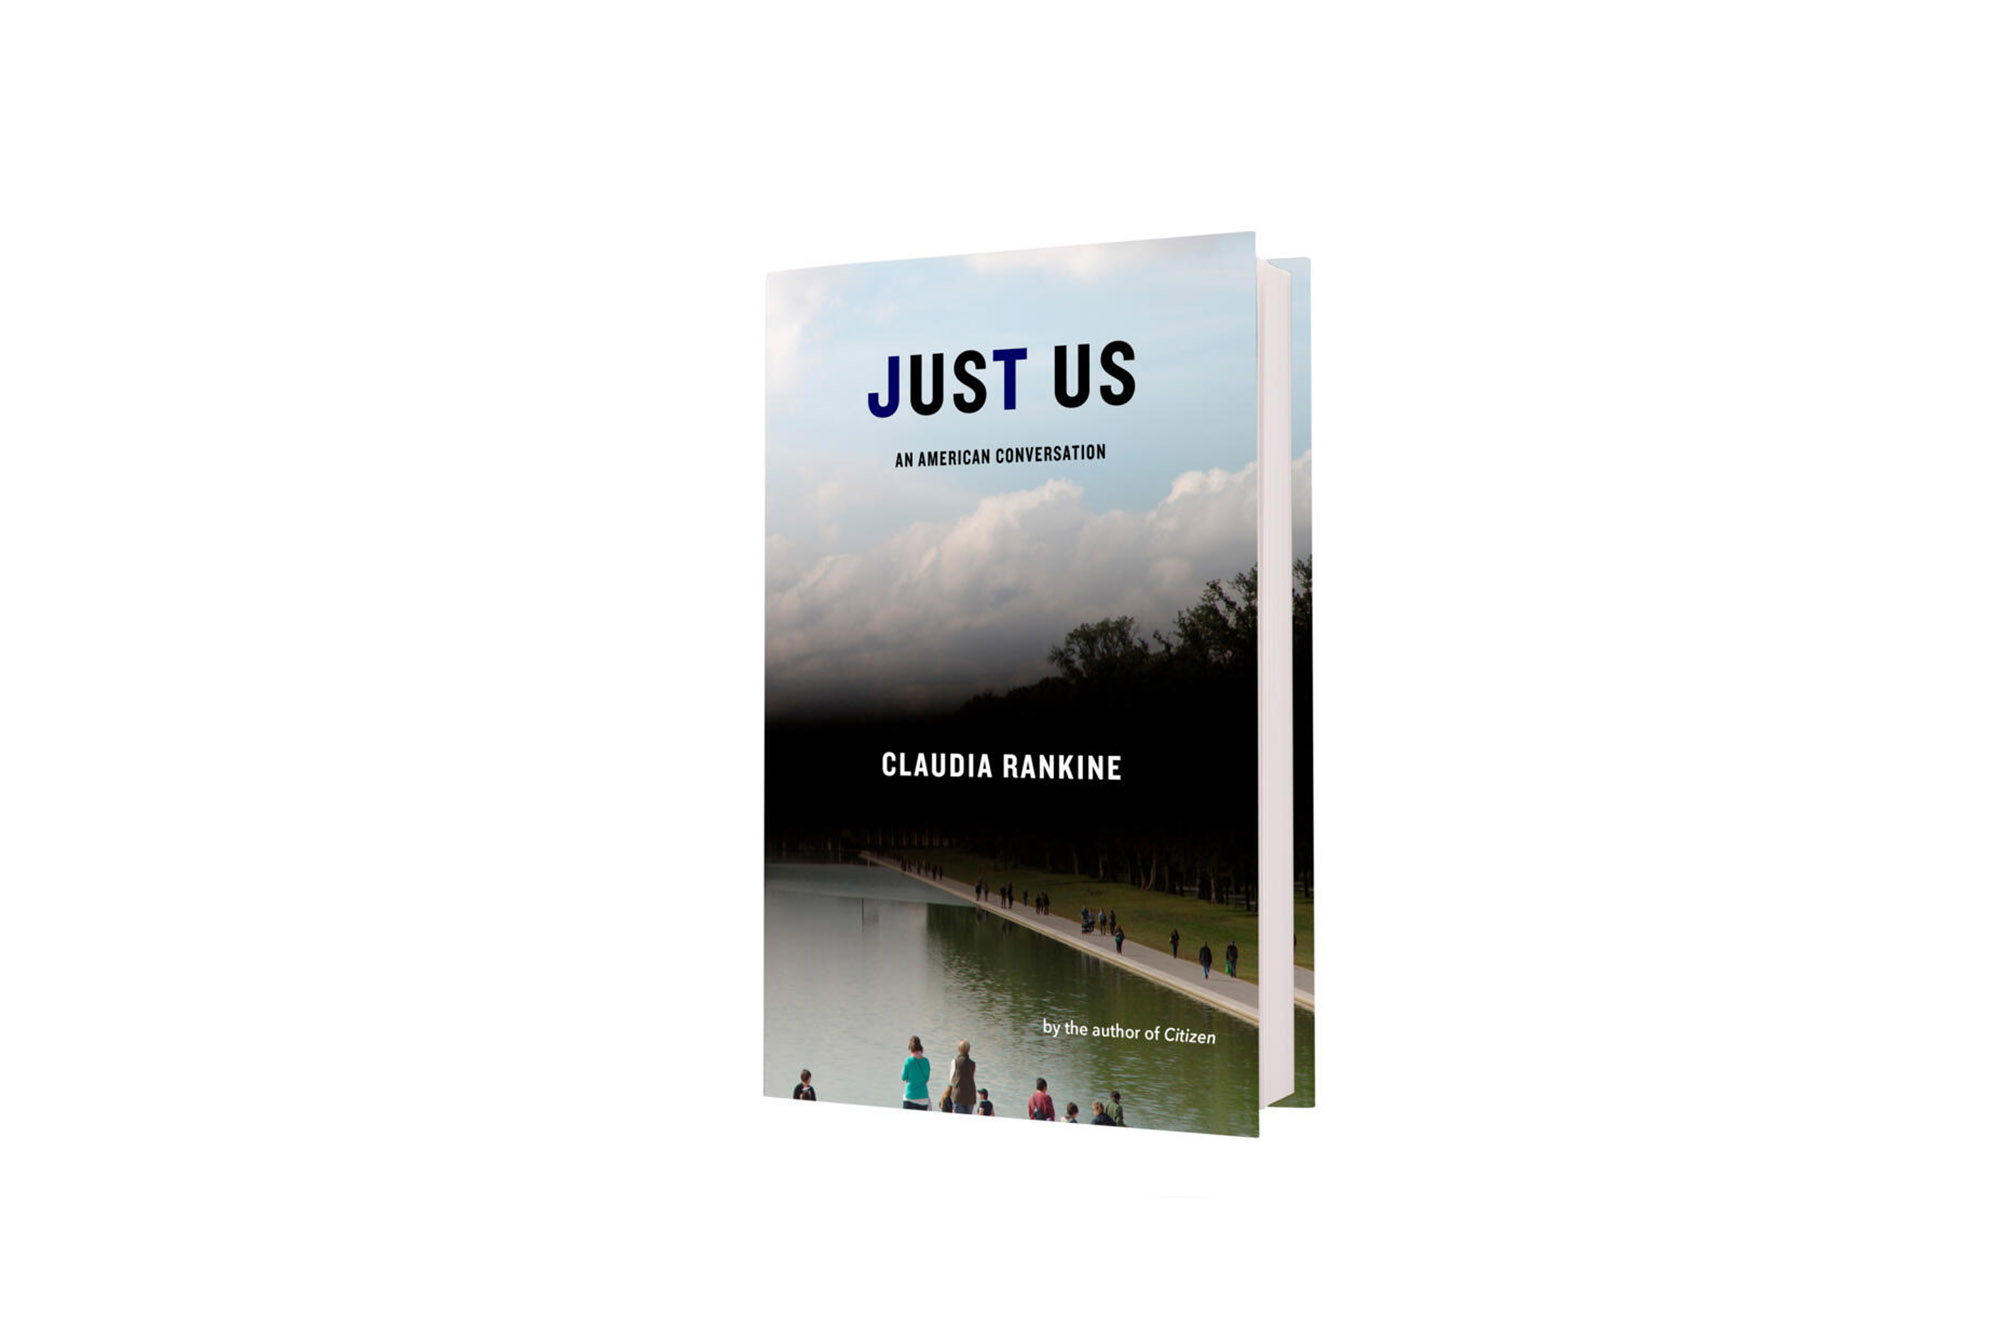 Just Us by Claudia Rankine